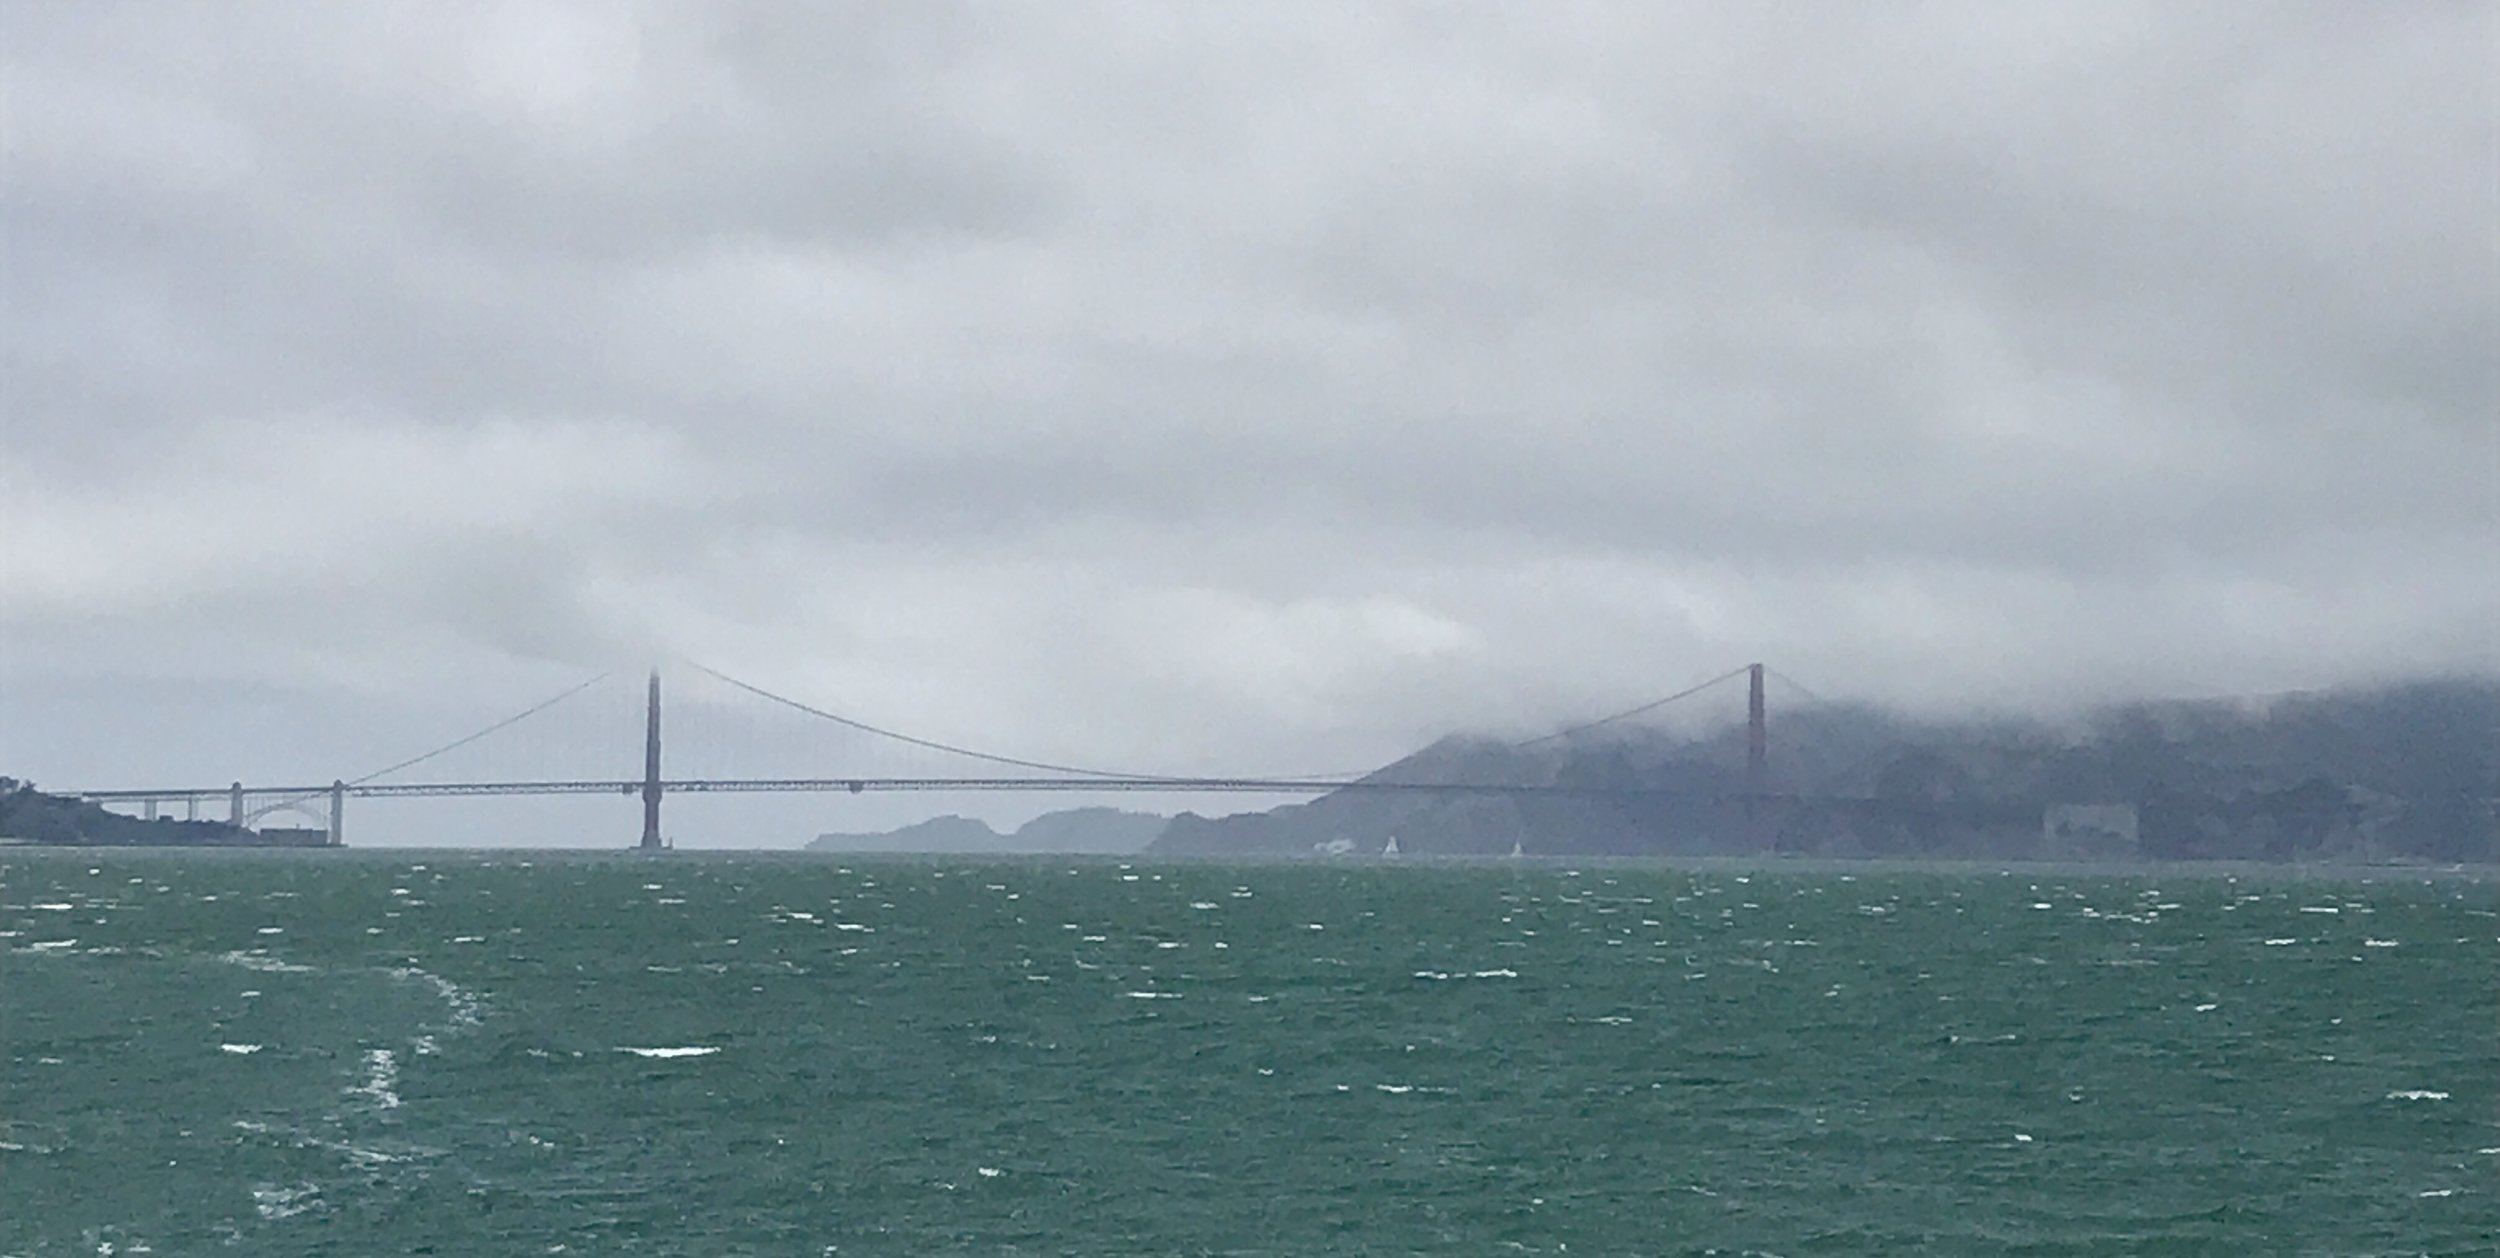 The Golden Gate Bridge in the distance.